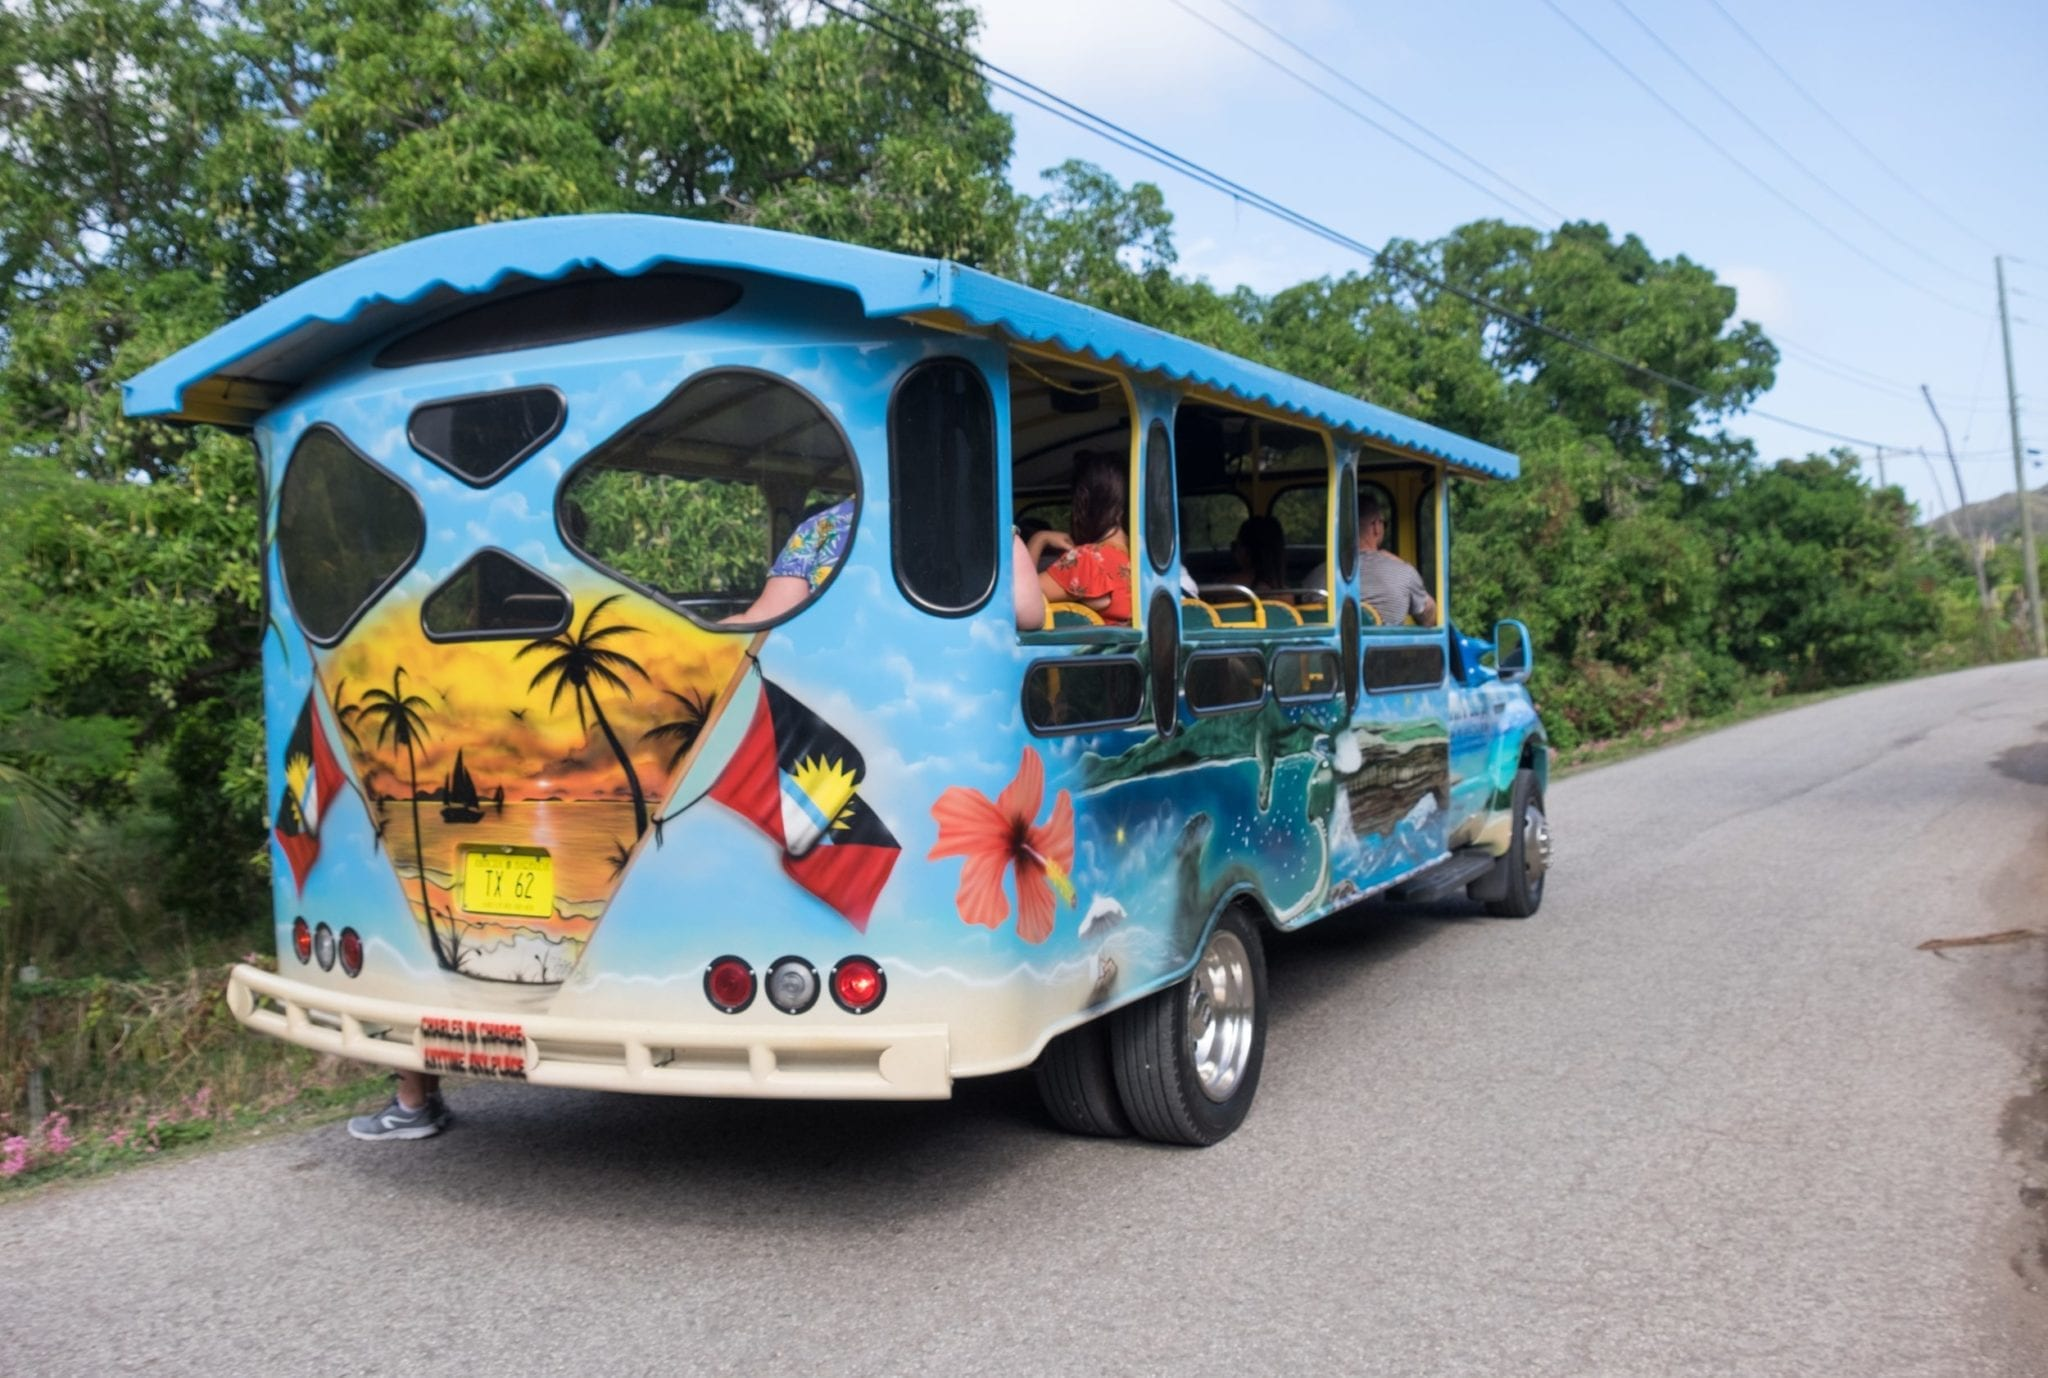 The back of a brightly painted blue bus with orange palm trees painted on the back in Antigua